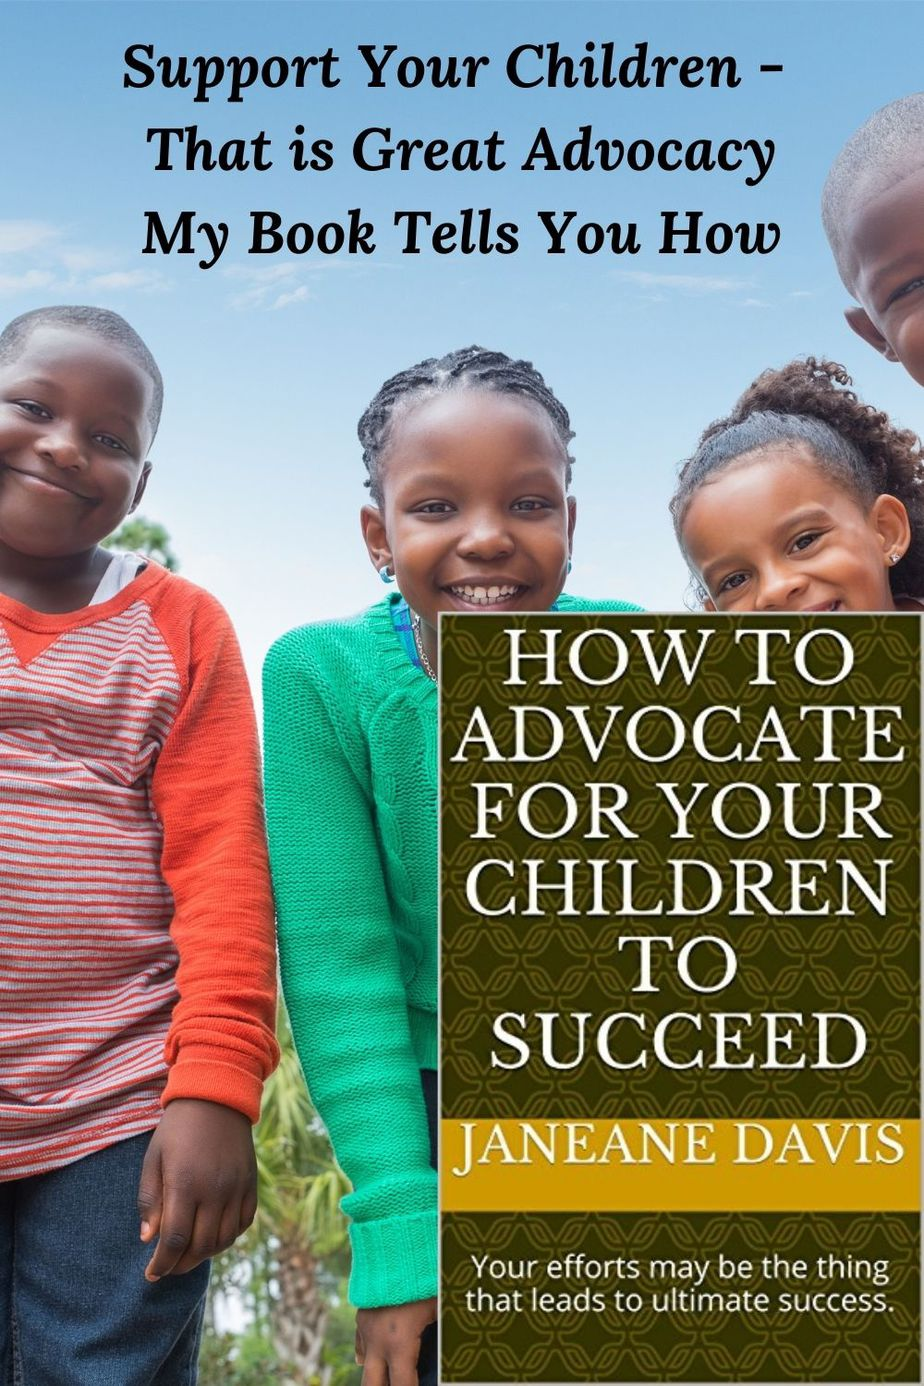 """Photo of 4 smiling African American children and a cover of the book """"How to Advocate for Your Children"""" Support Your Children - That is Great Advocacy My Book Will Show You How"""